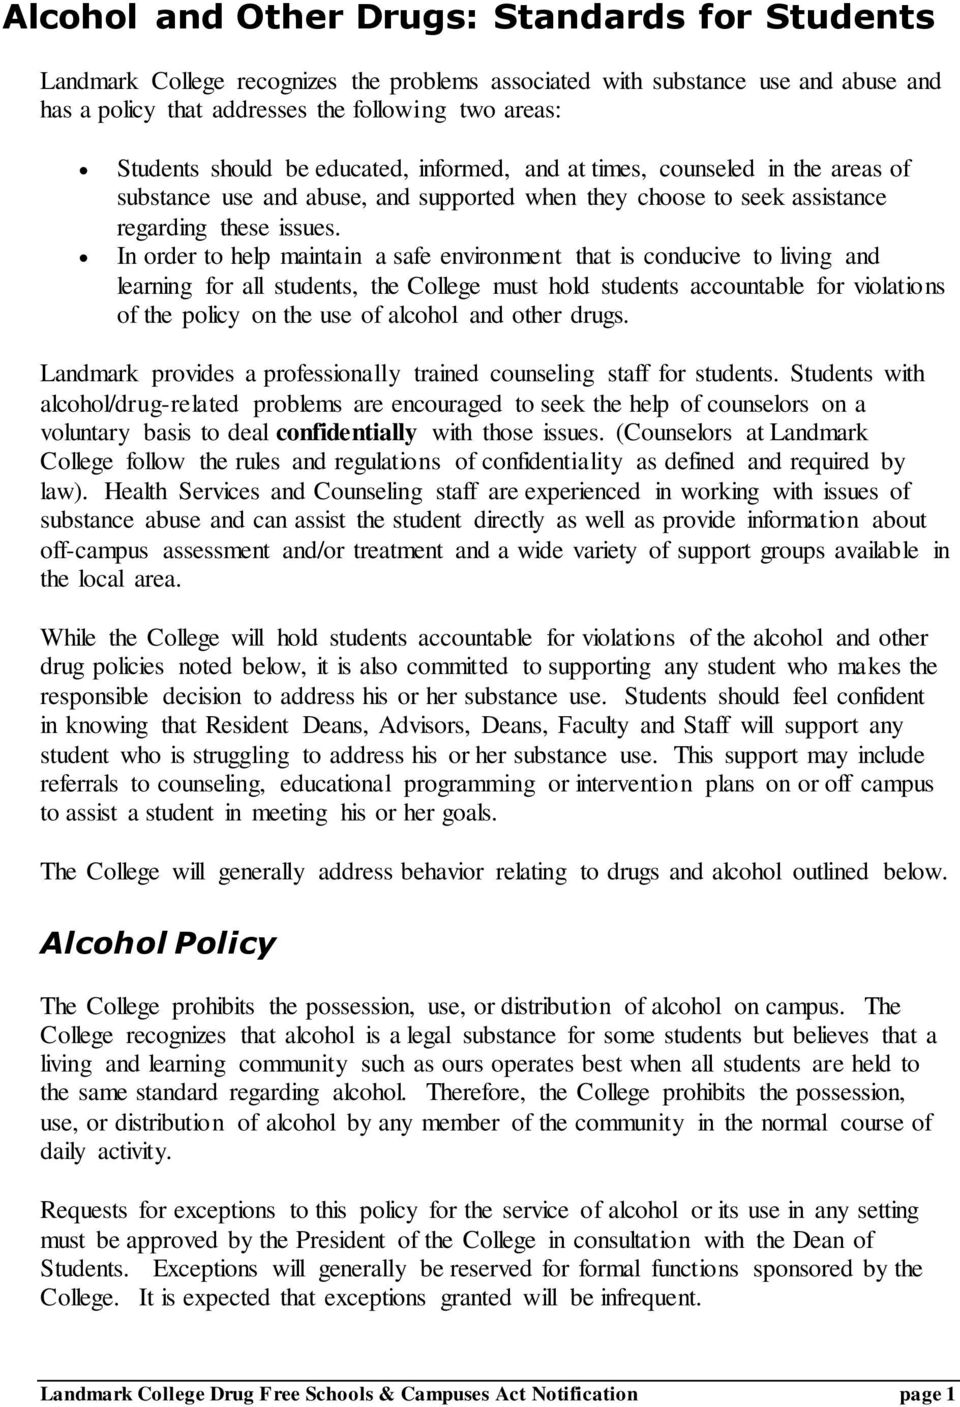 In order to help maintain a safe environment that is conducive to living and learning for all students, the College must hold students accountable for violations of the policy on the use of alcohol